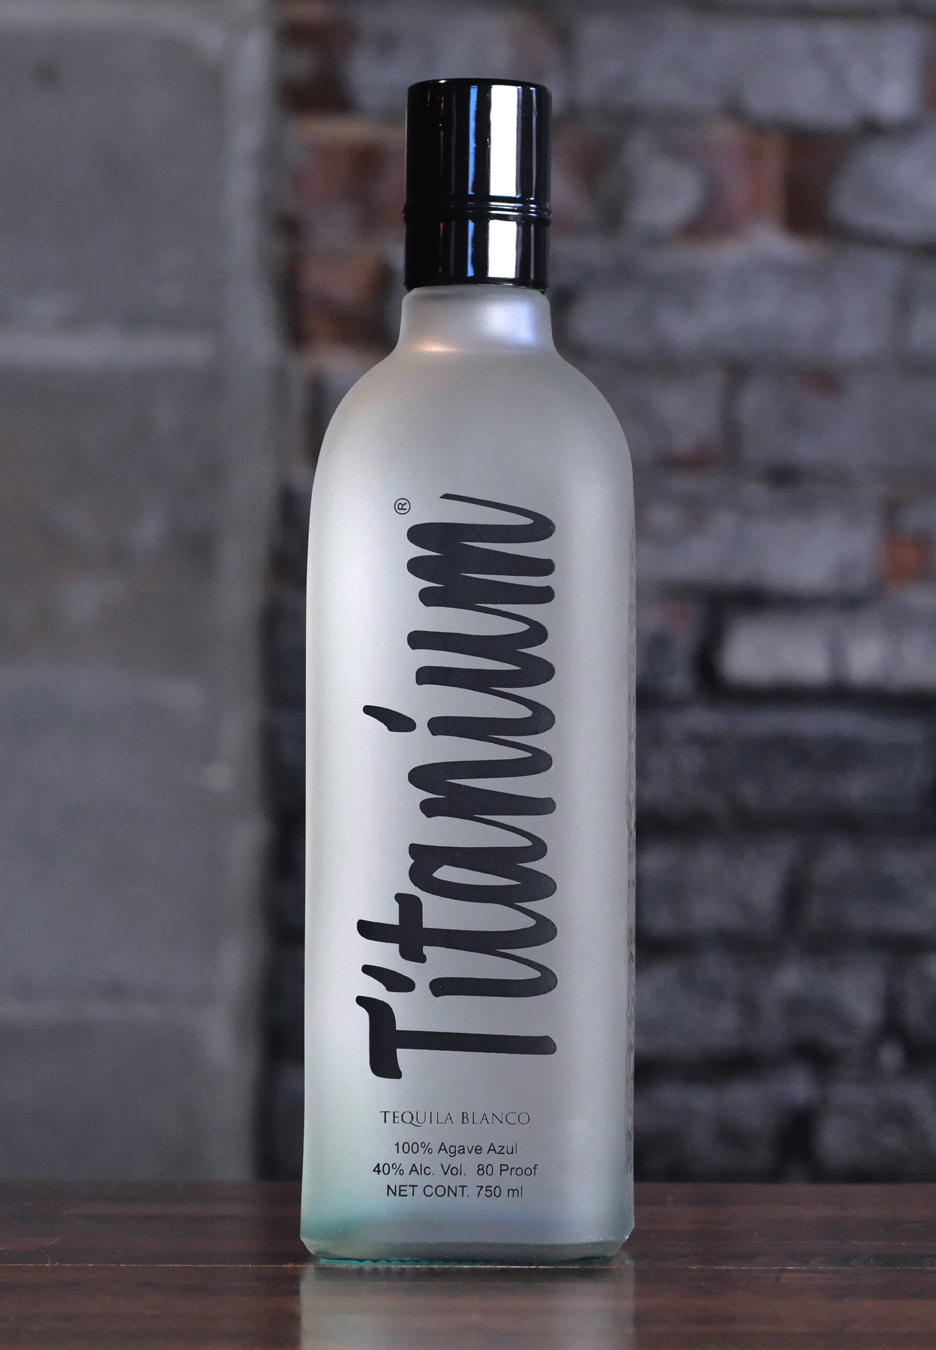 Titanium Tequila: Luxury Attained